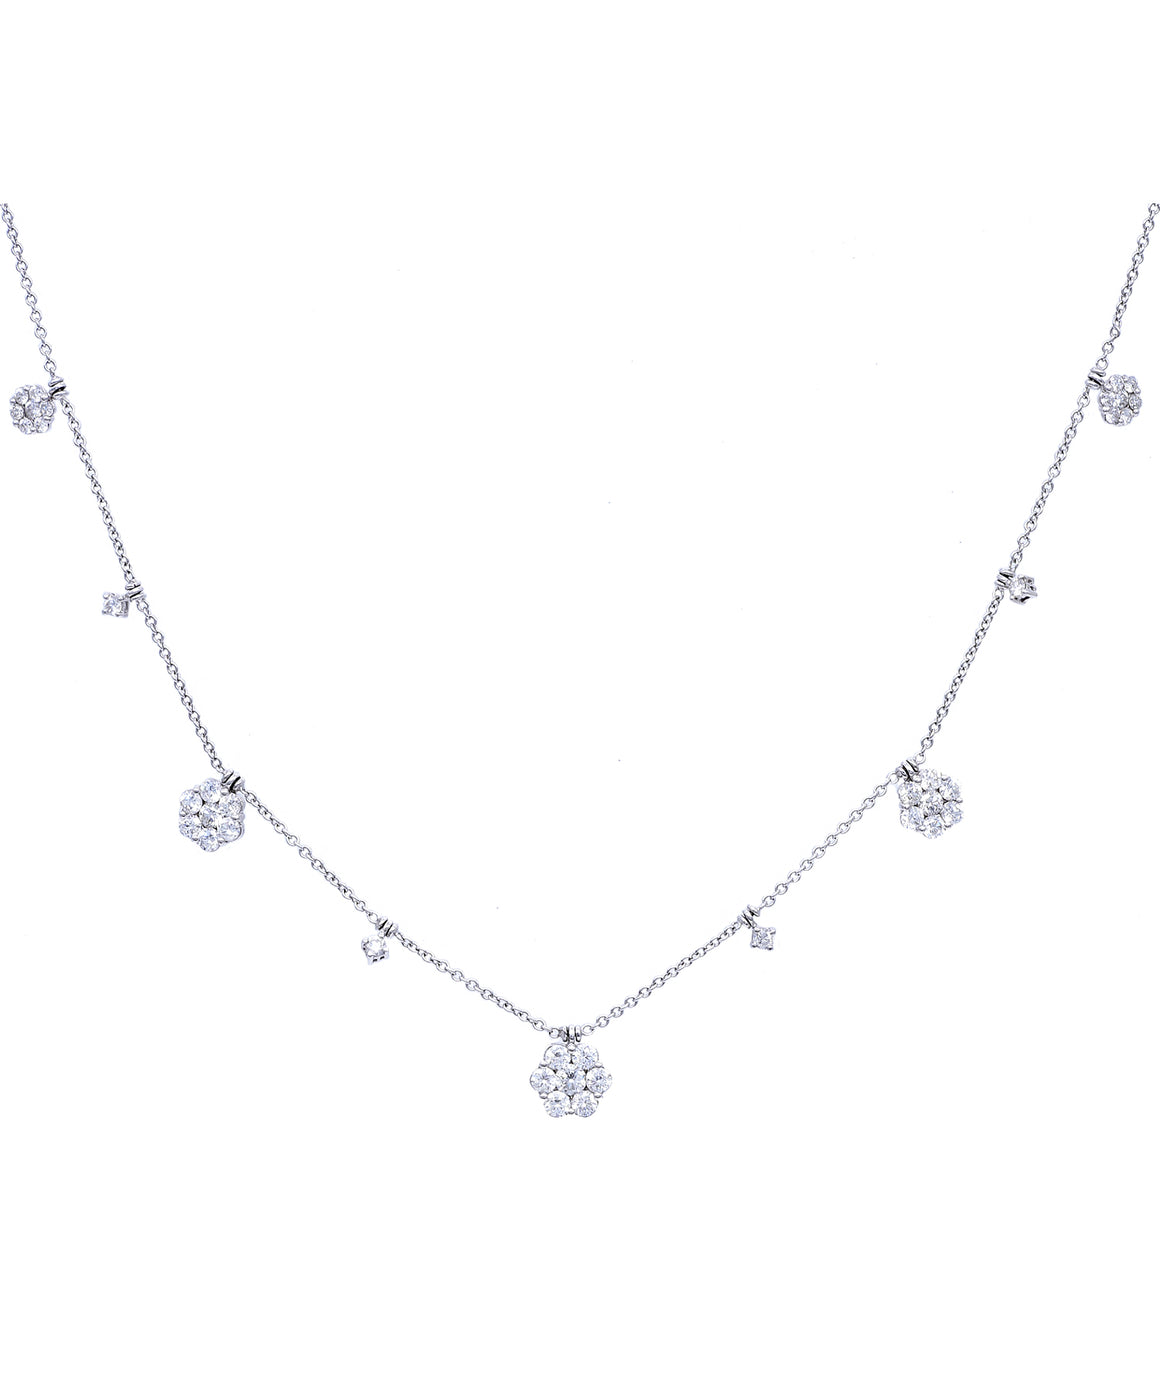 White gold diamond flower necklace - Lesley Ann Jewels